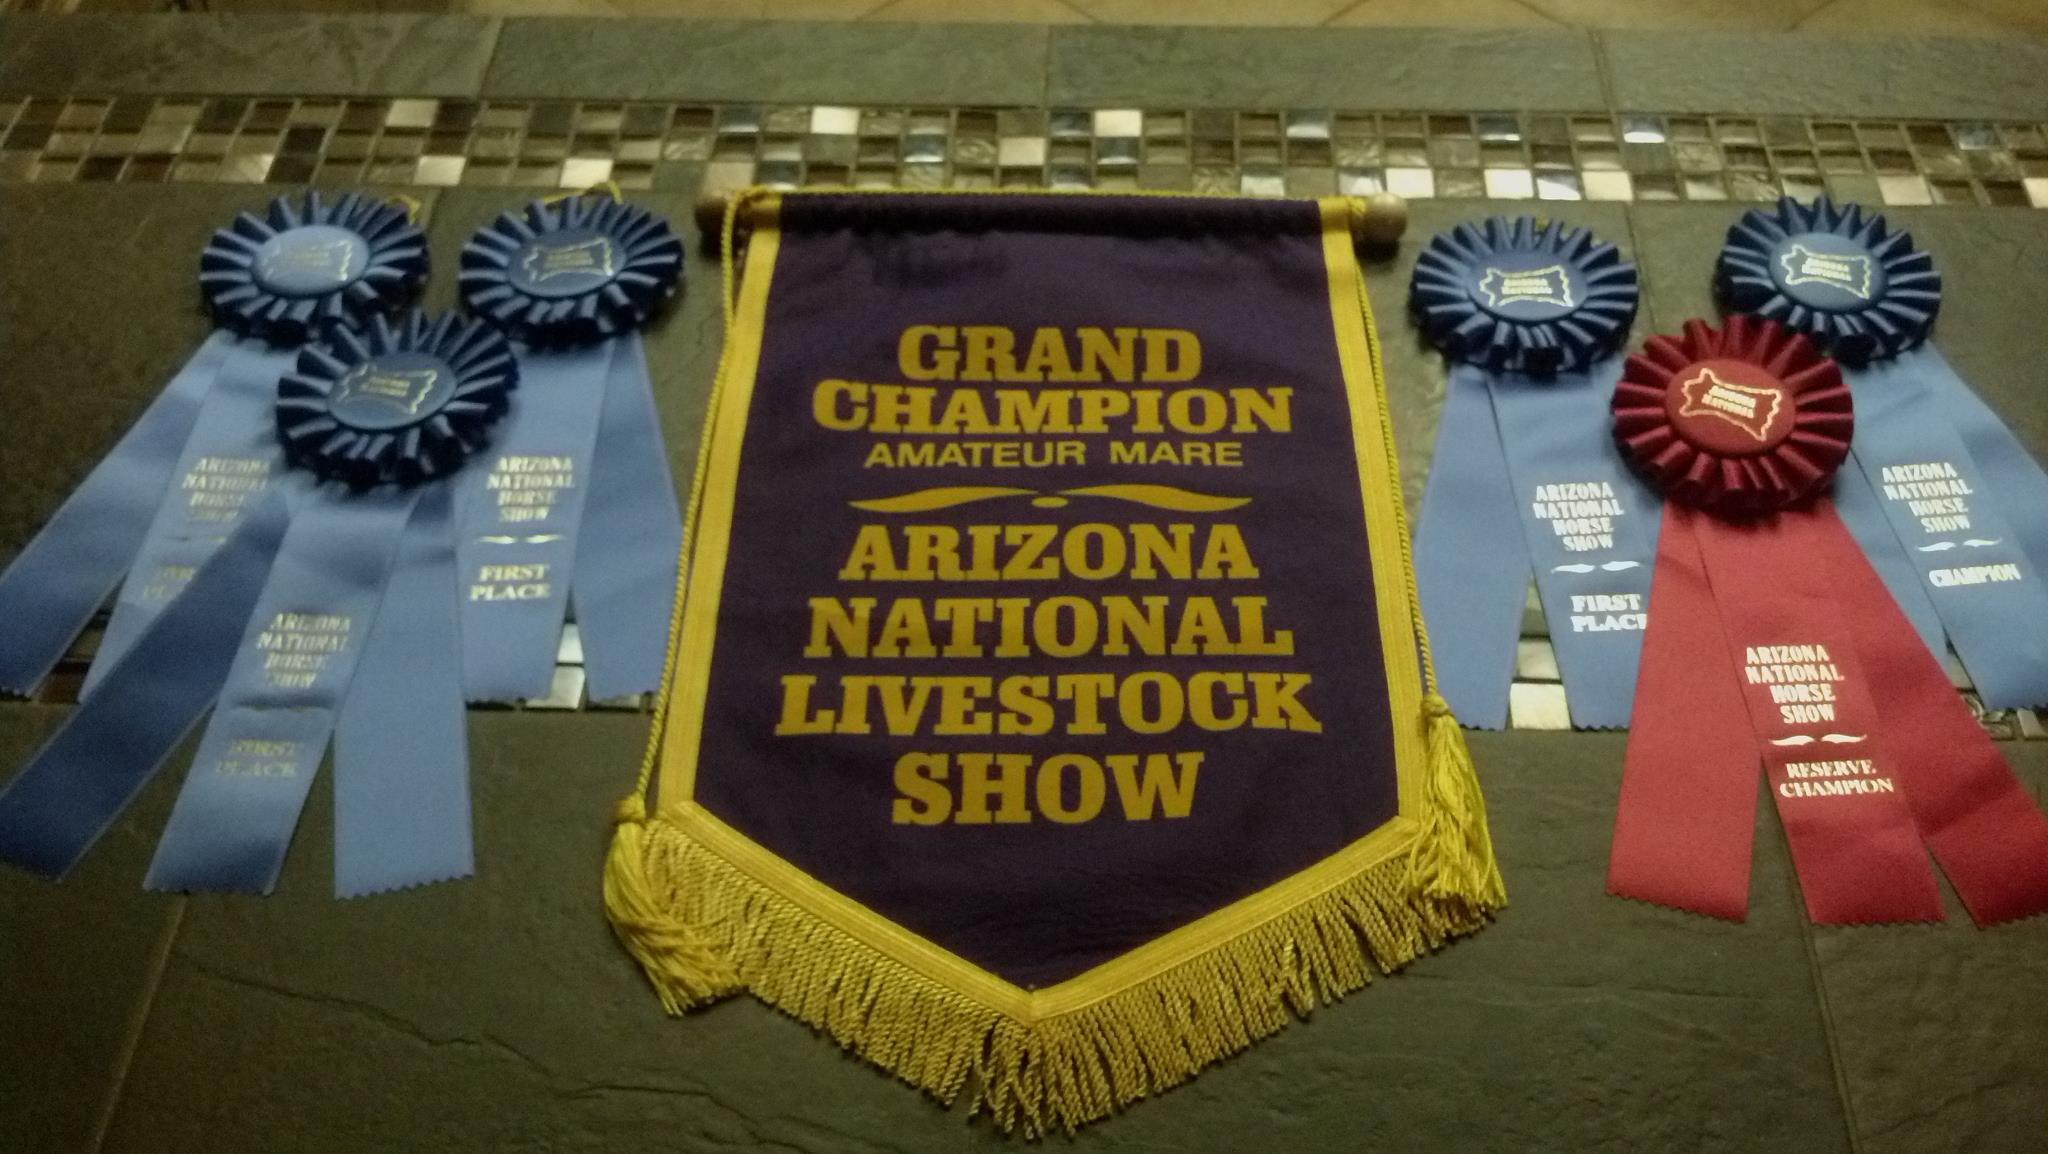 http://painteddesertranch.com/wp-content/uploads/2018/11/FirstOpenGrandChampion.jpg